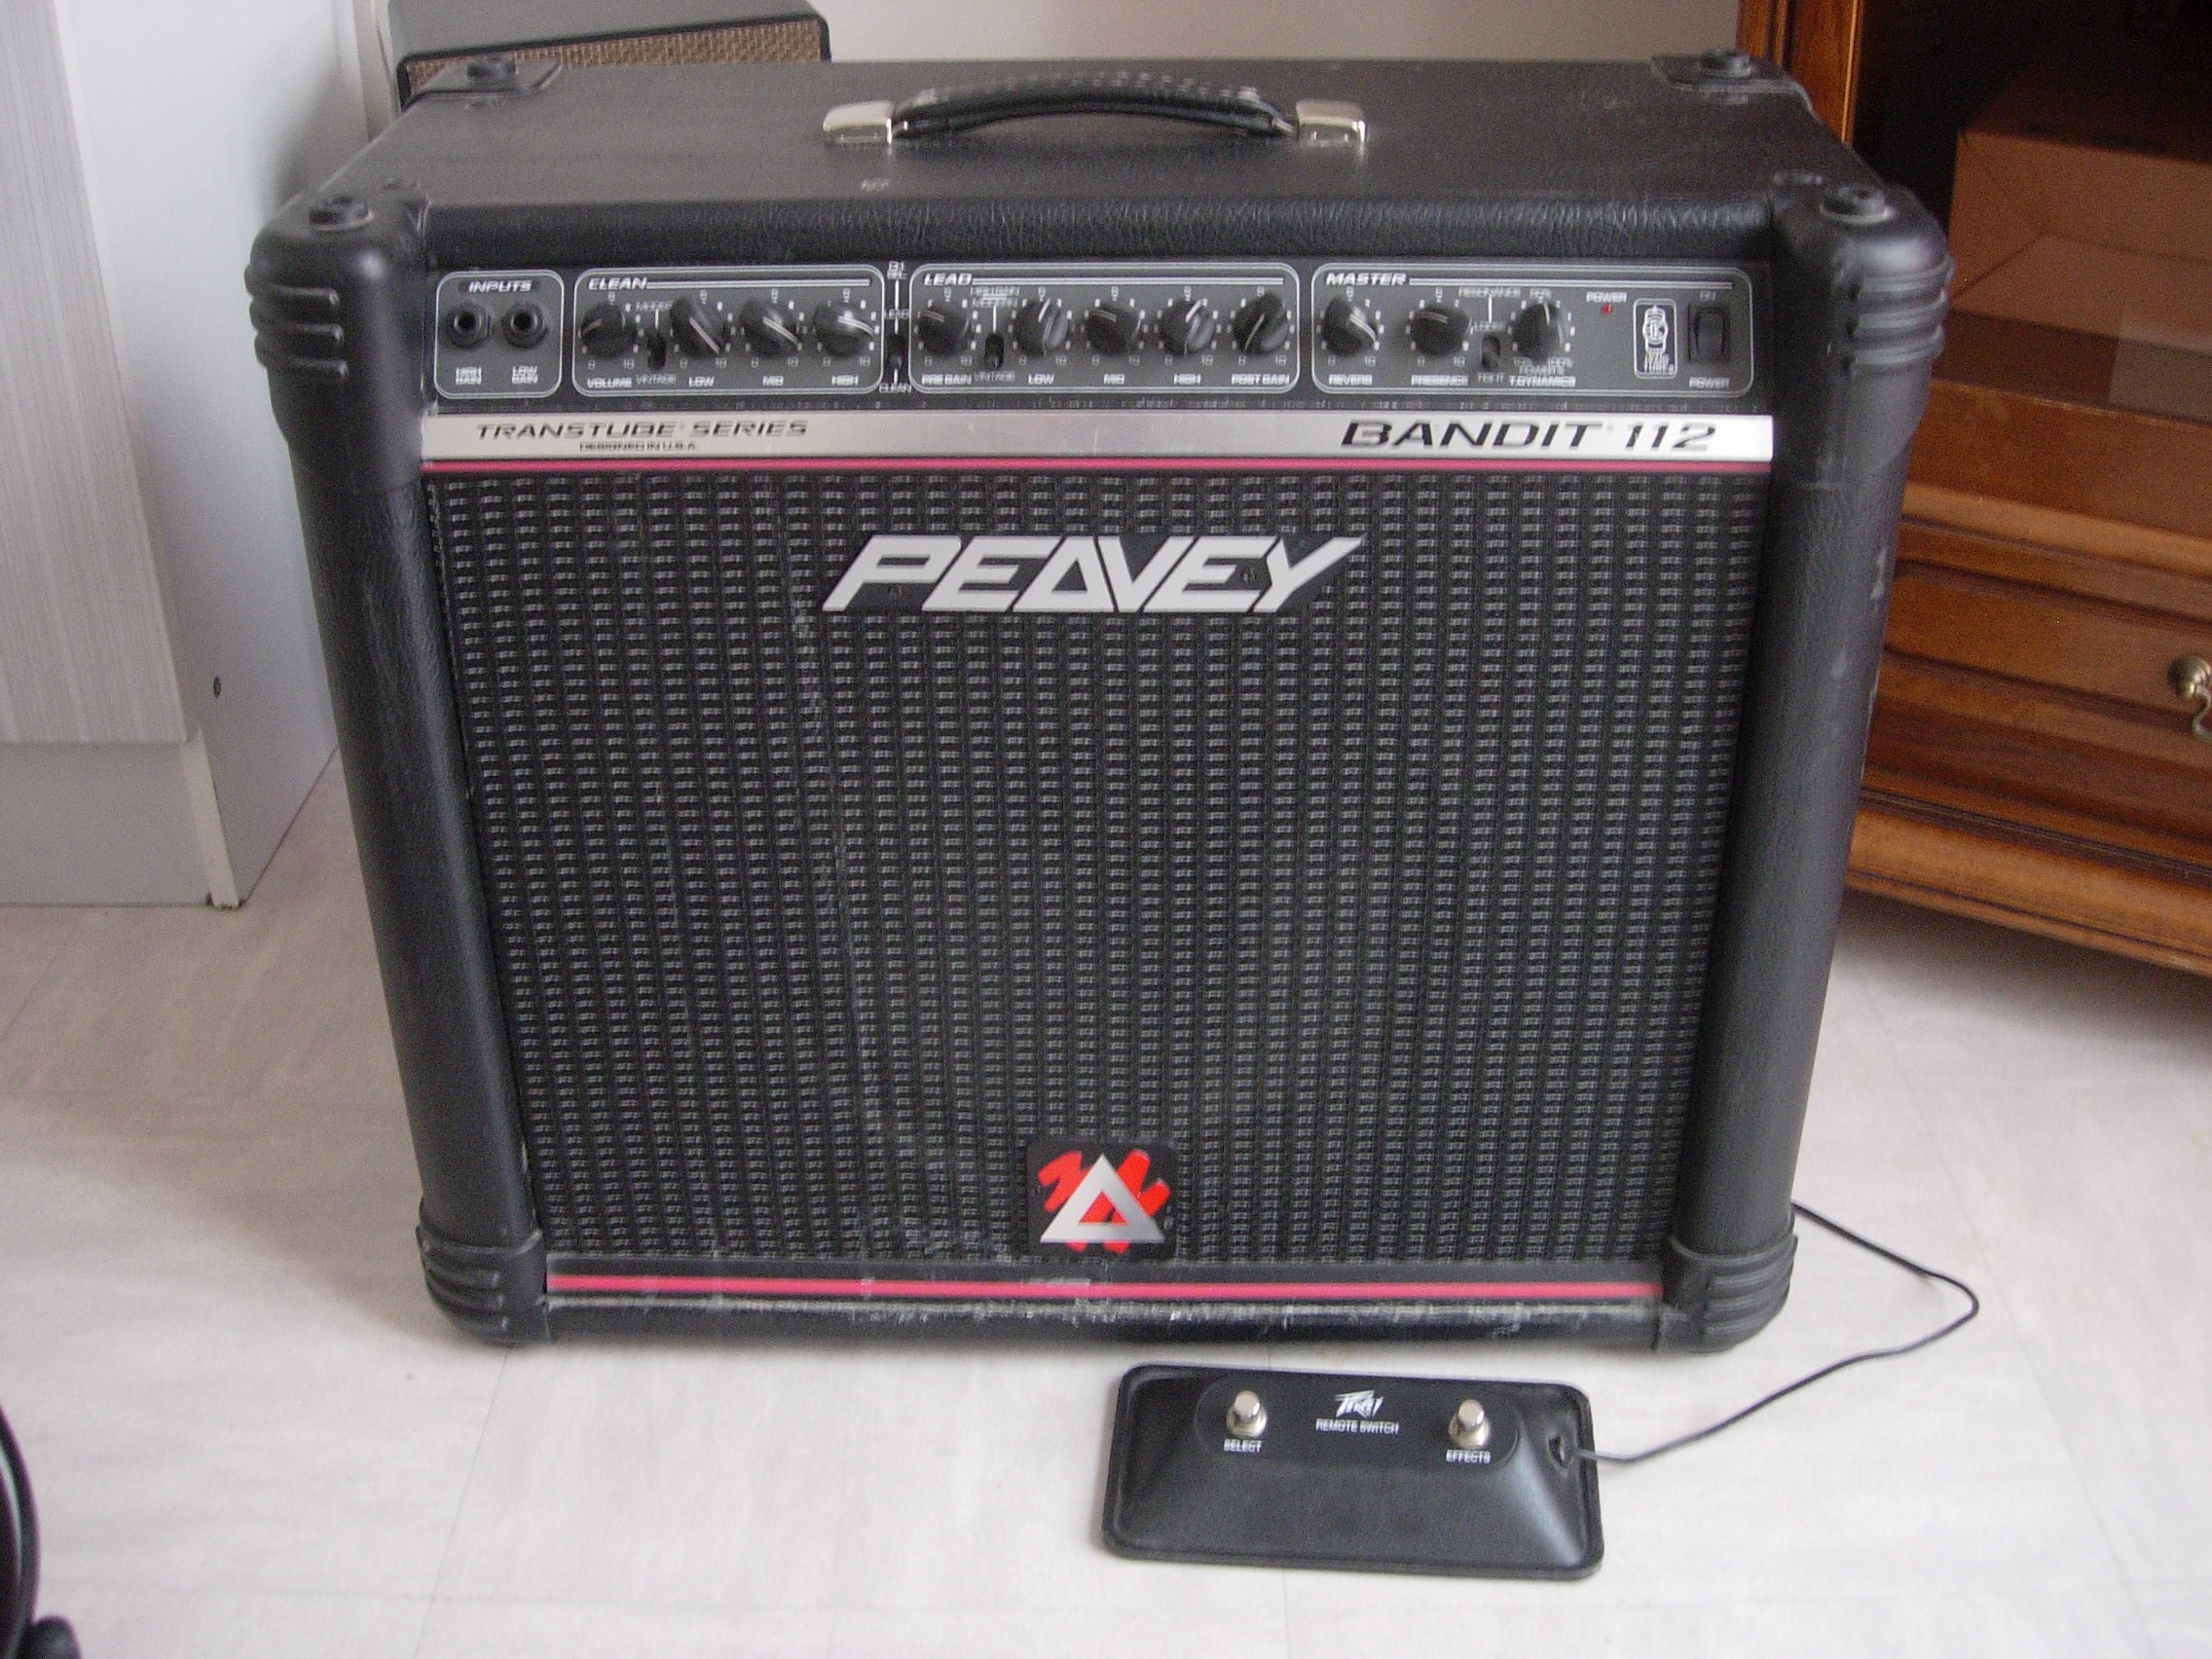 Peavey Bandit 112 Used : peavey bandit 112 ii made in china discontinued image 408663 audiofanzine ~ Vivirlamusica.com Haus und Dekorationen